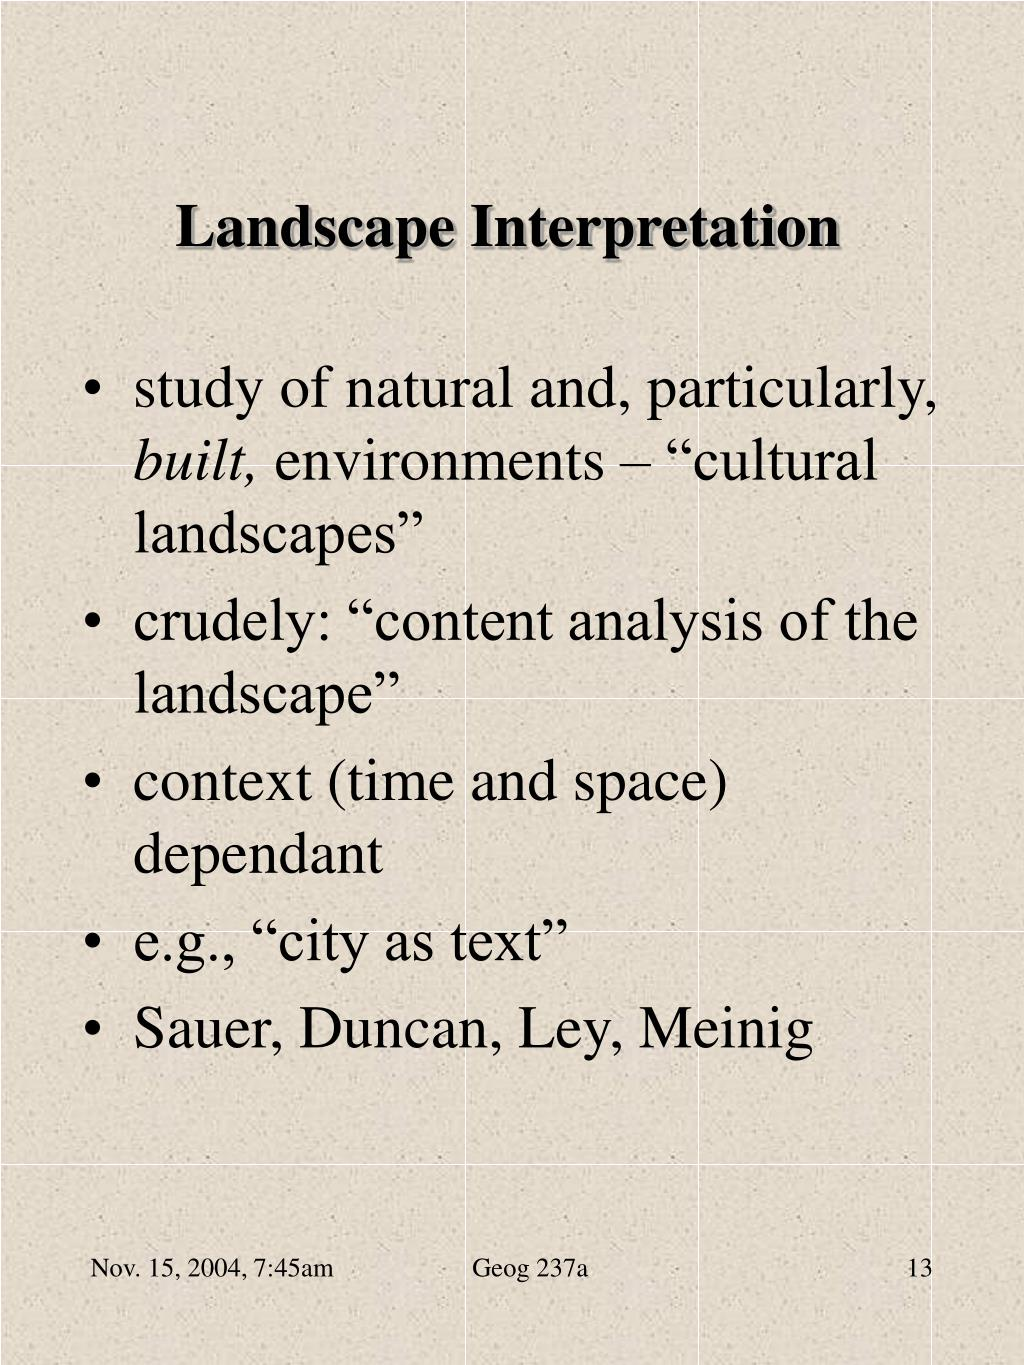 Landscape Interpretation